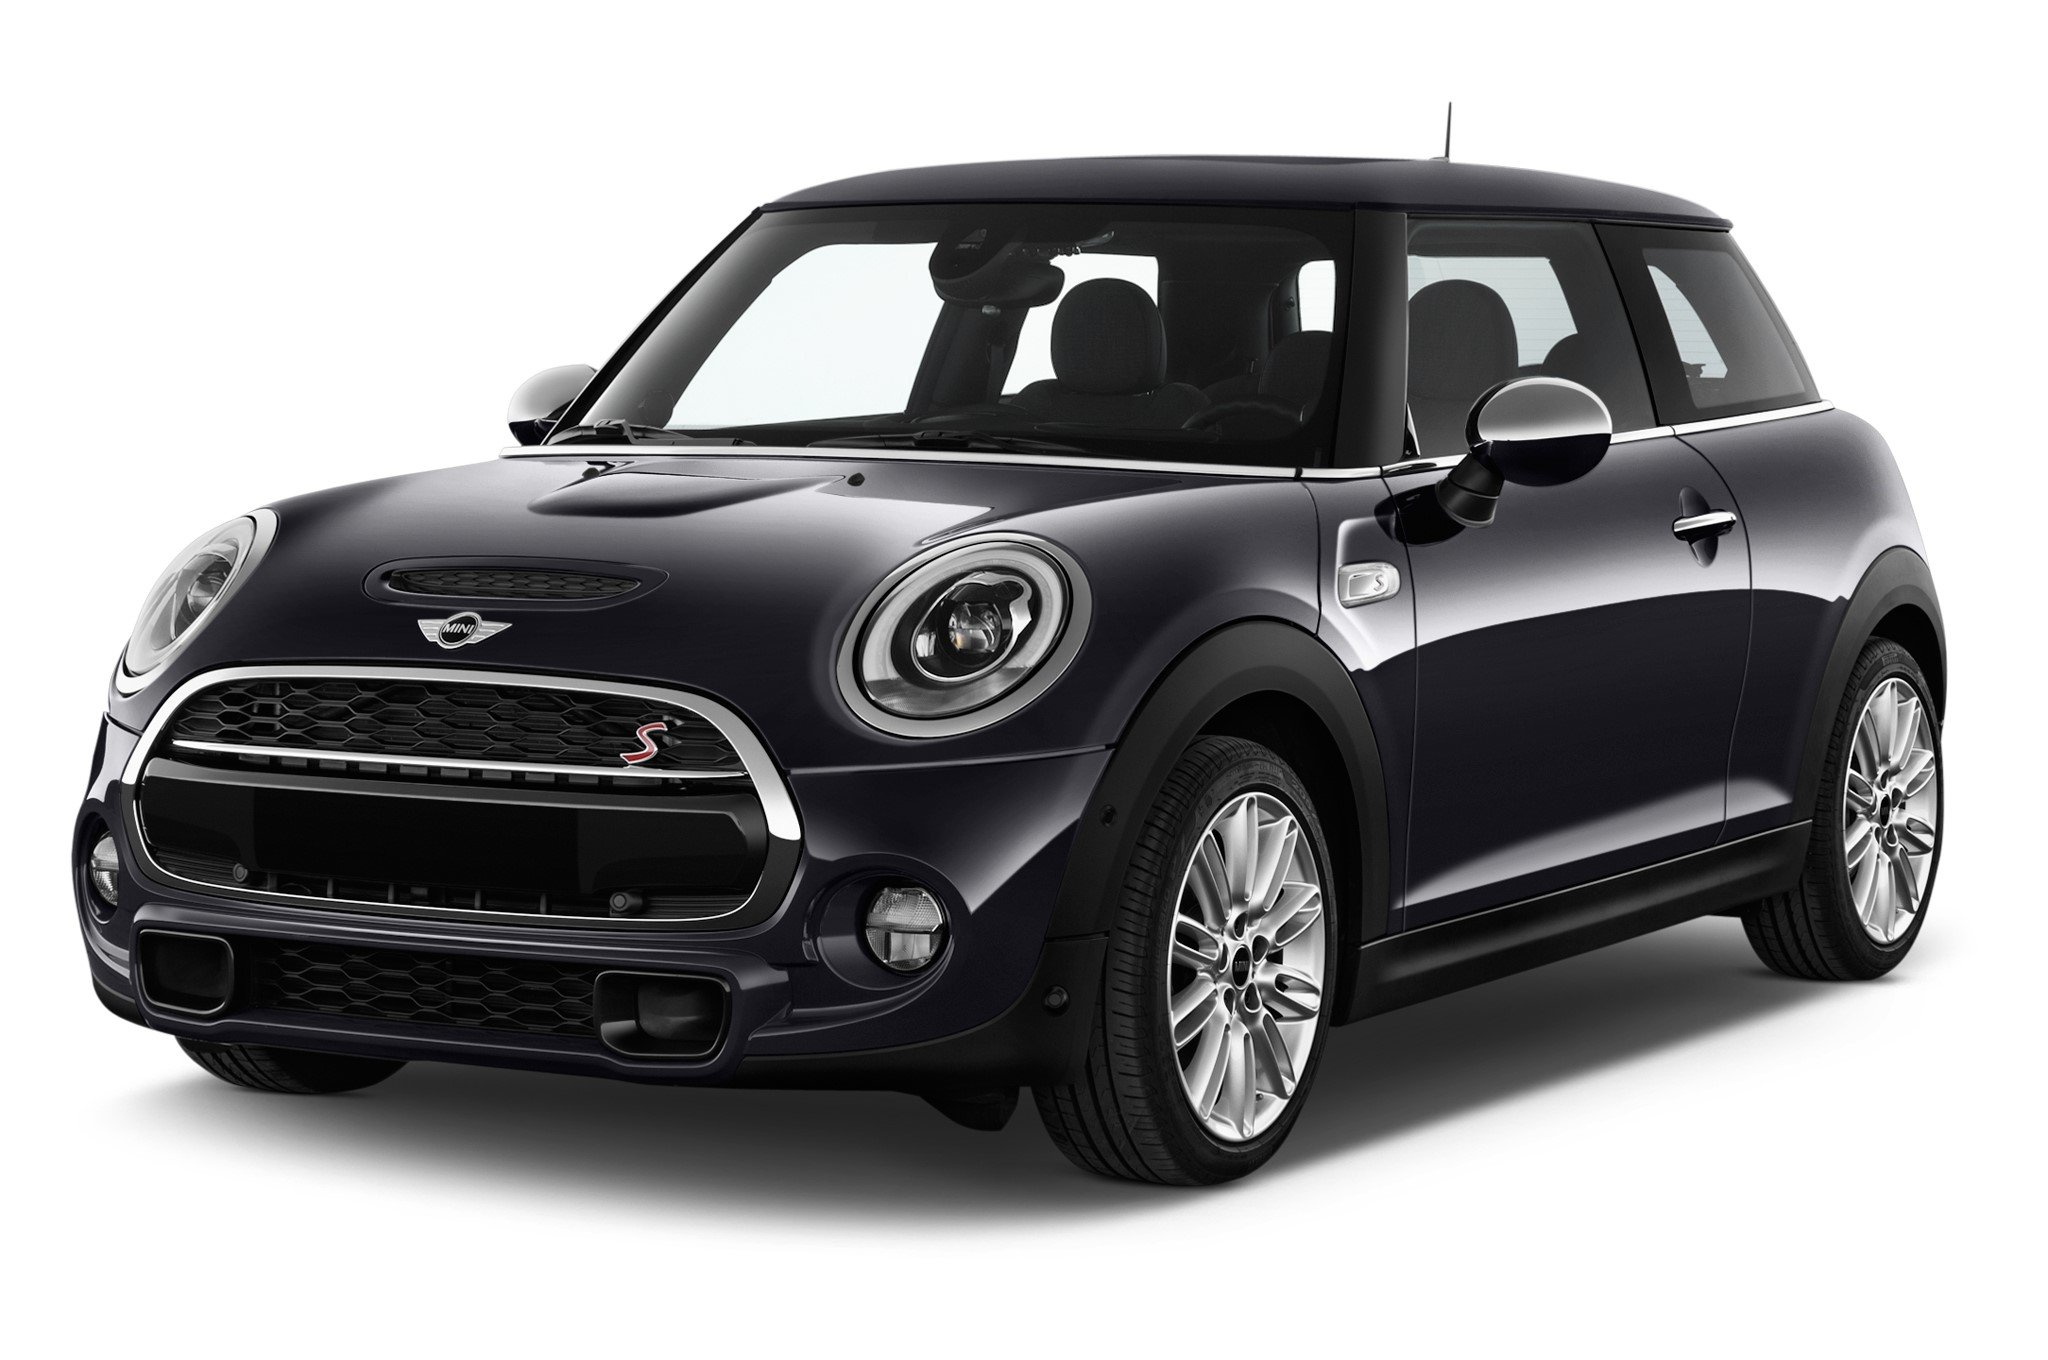 mini cooper desktop wallpapers wallpics. Black Bedroom Furniture Sets. Home Design Ideas